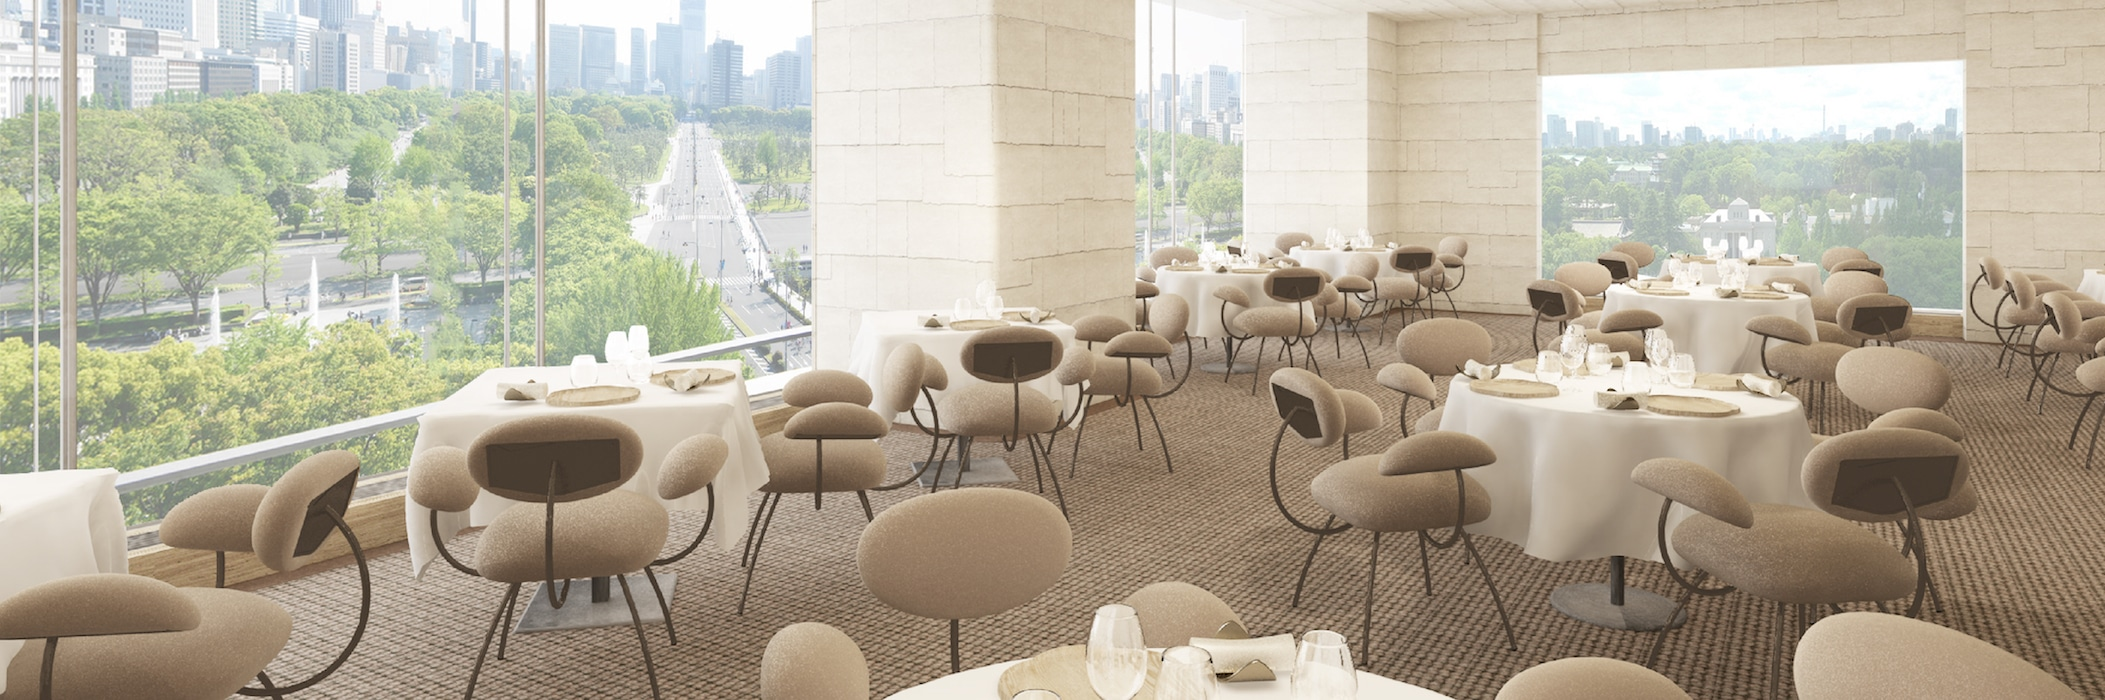 ESTERRE by Alain Ducasse at Palace Hotel Tokyo RENDERING FS2